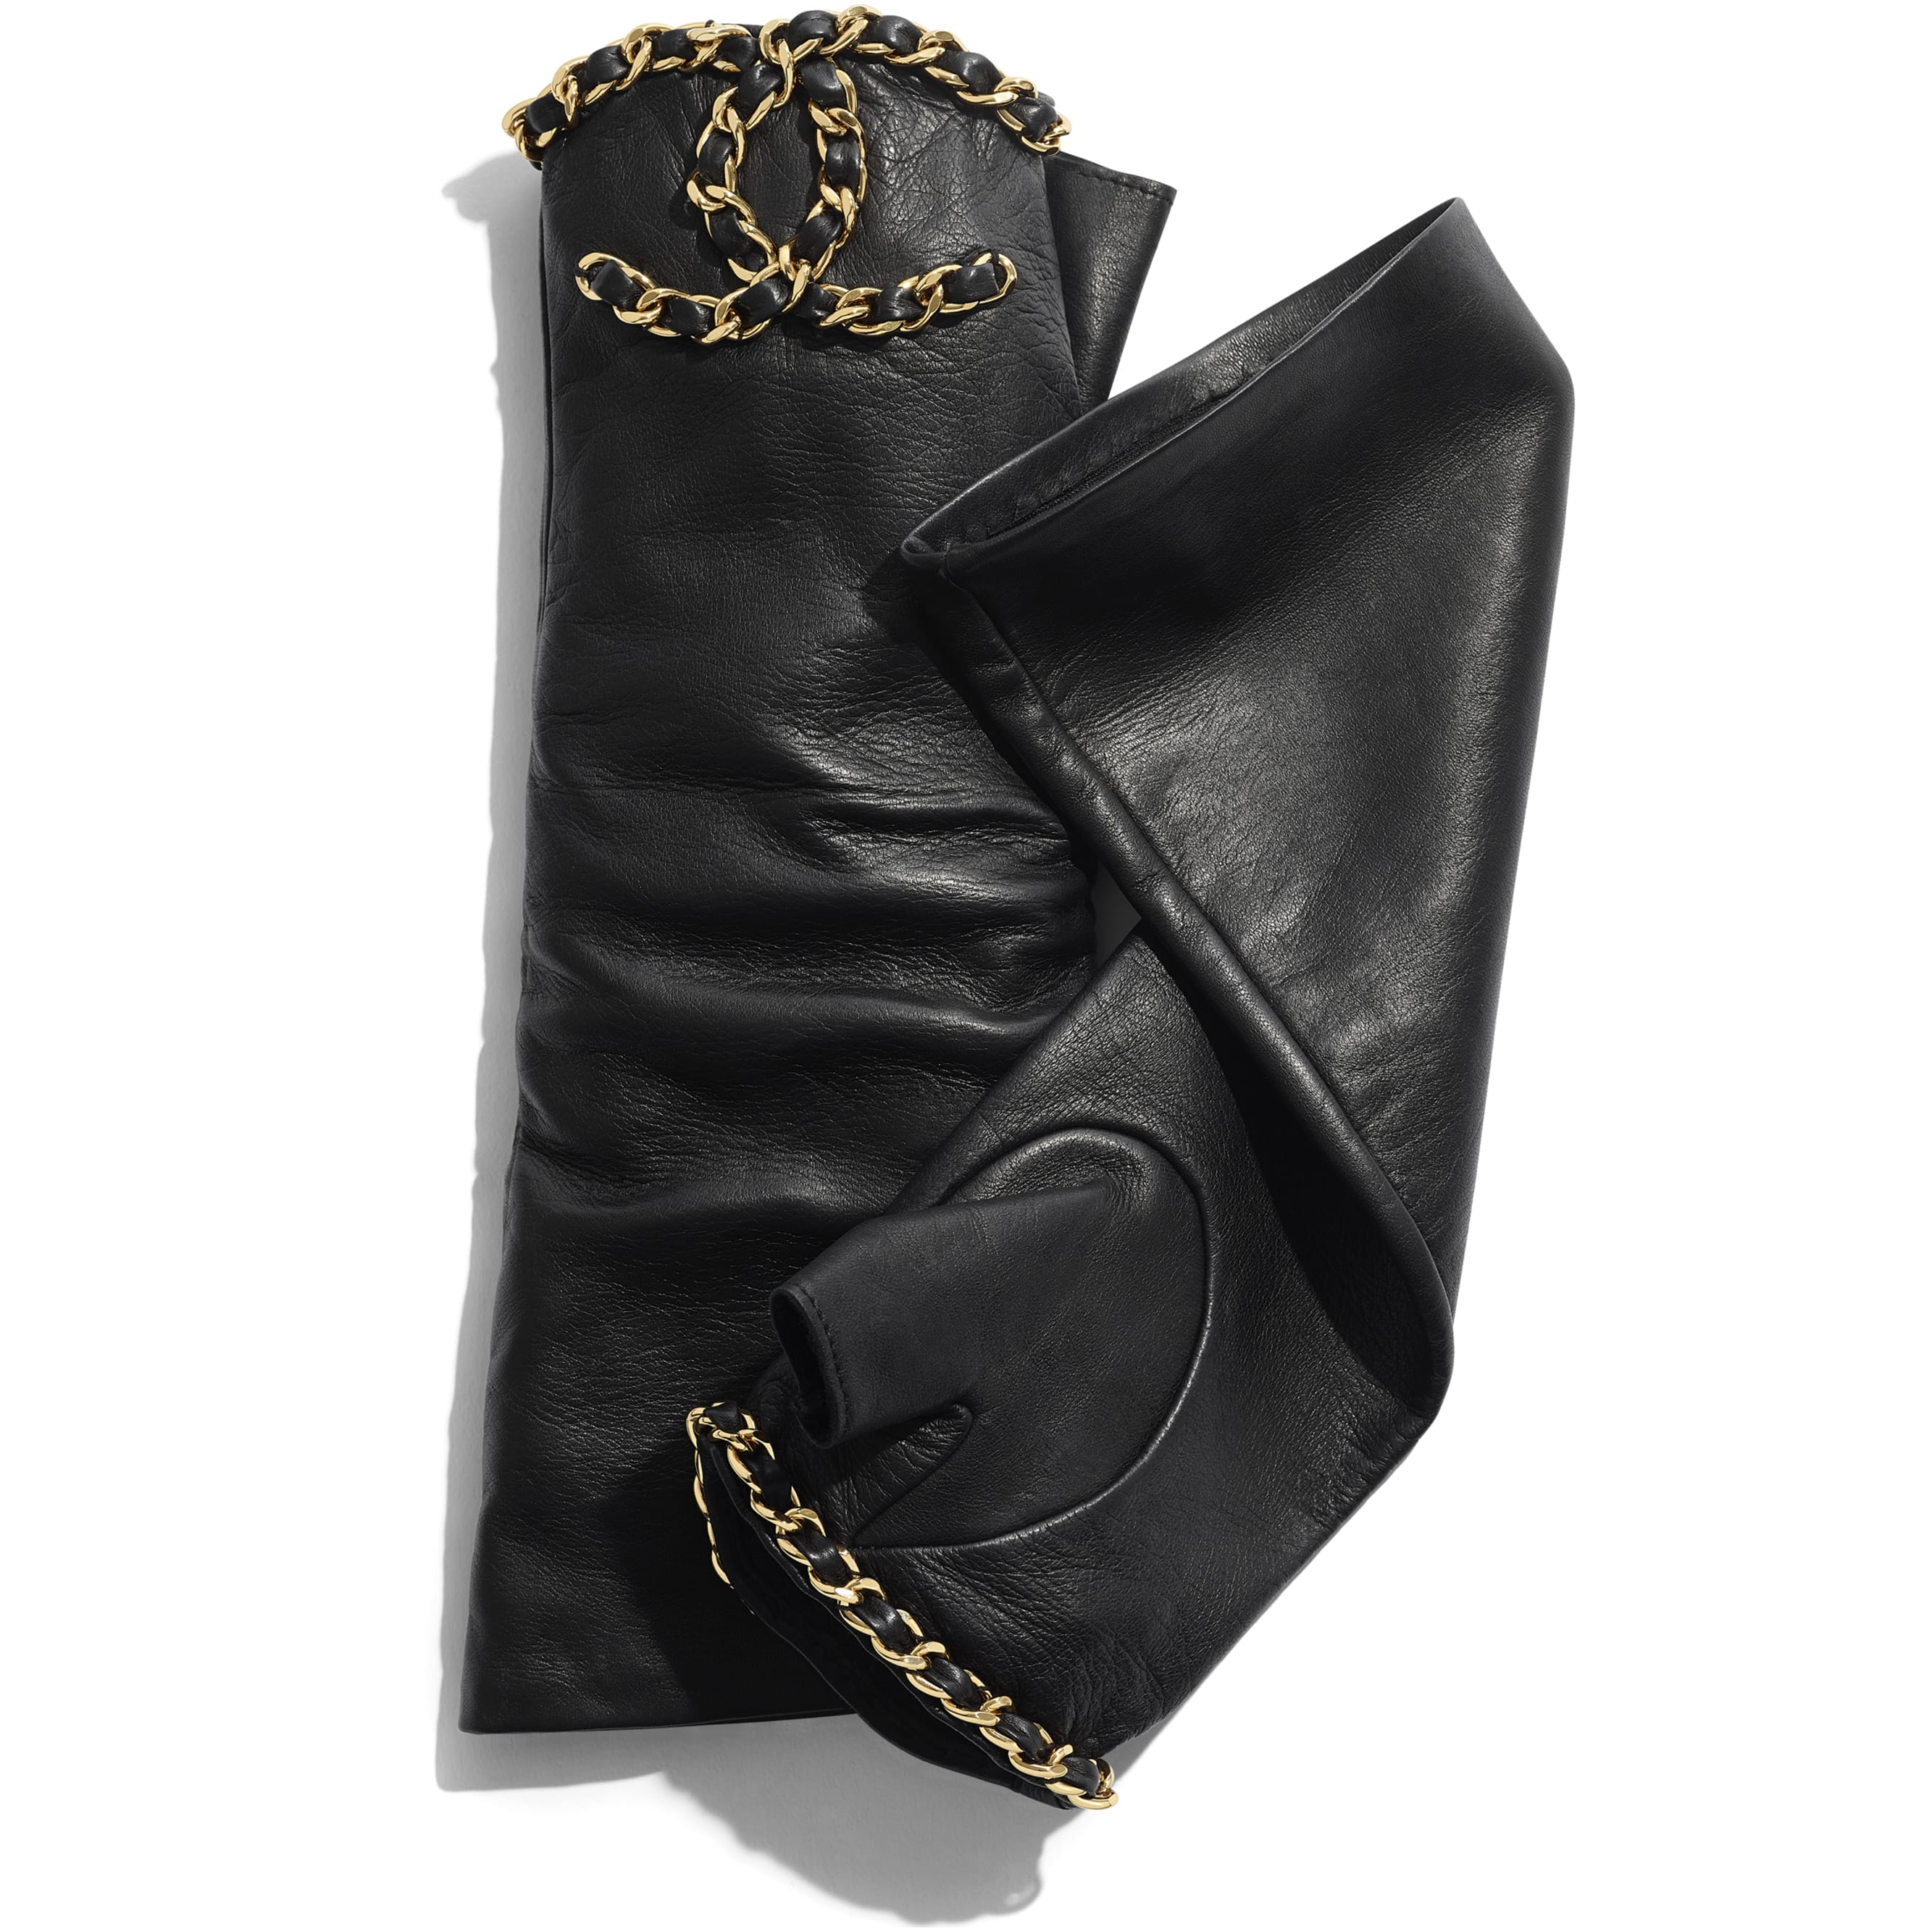 Gloves - Black - Lambskin - CHANEL - Alternative view - see standard sized version